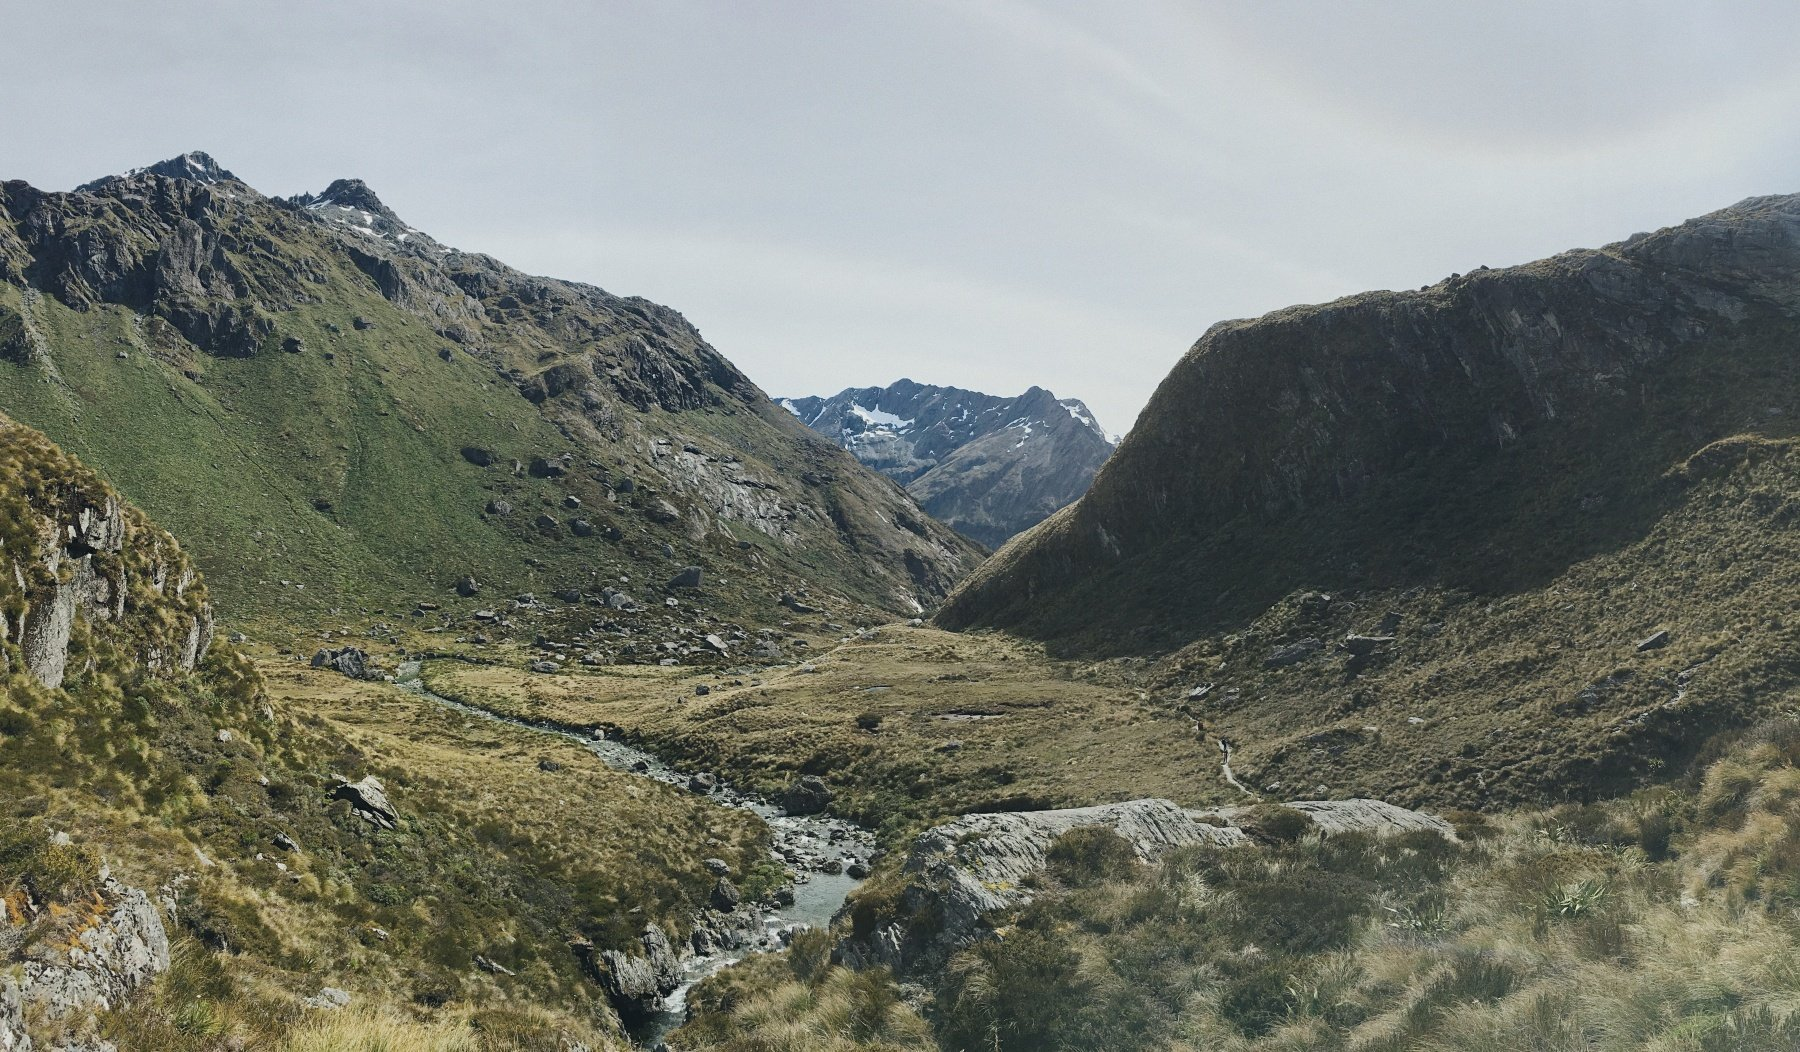 Running the Routeburn Track